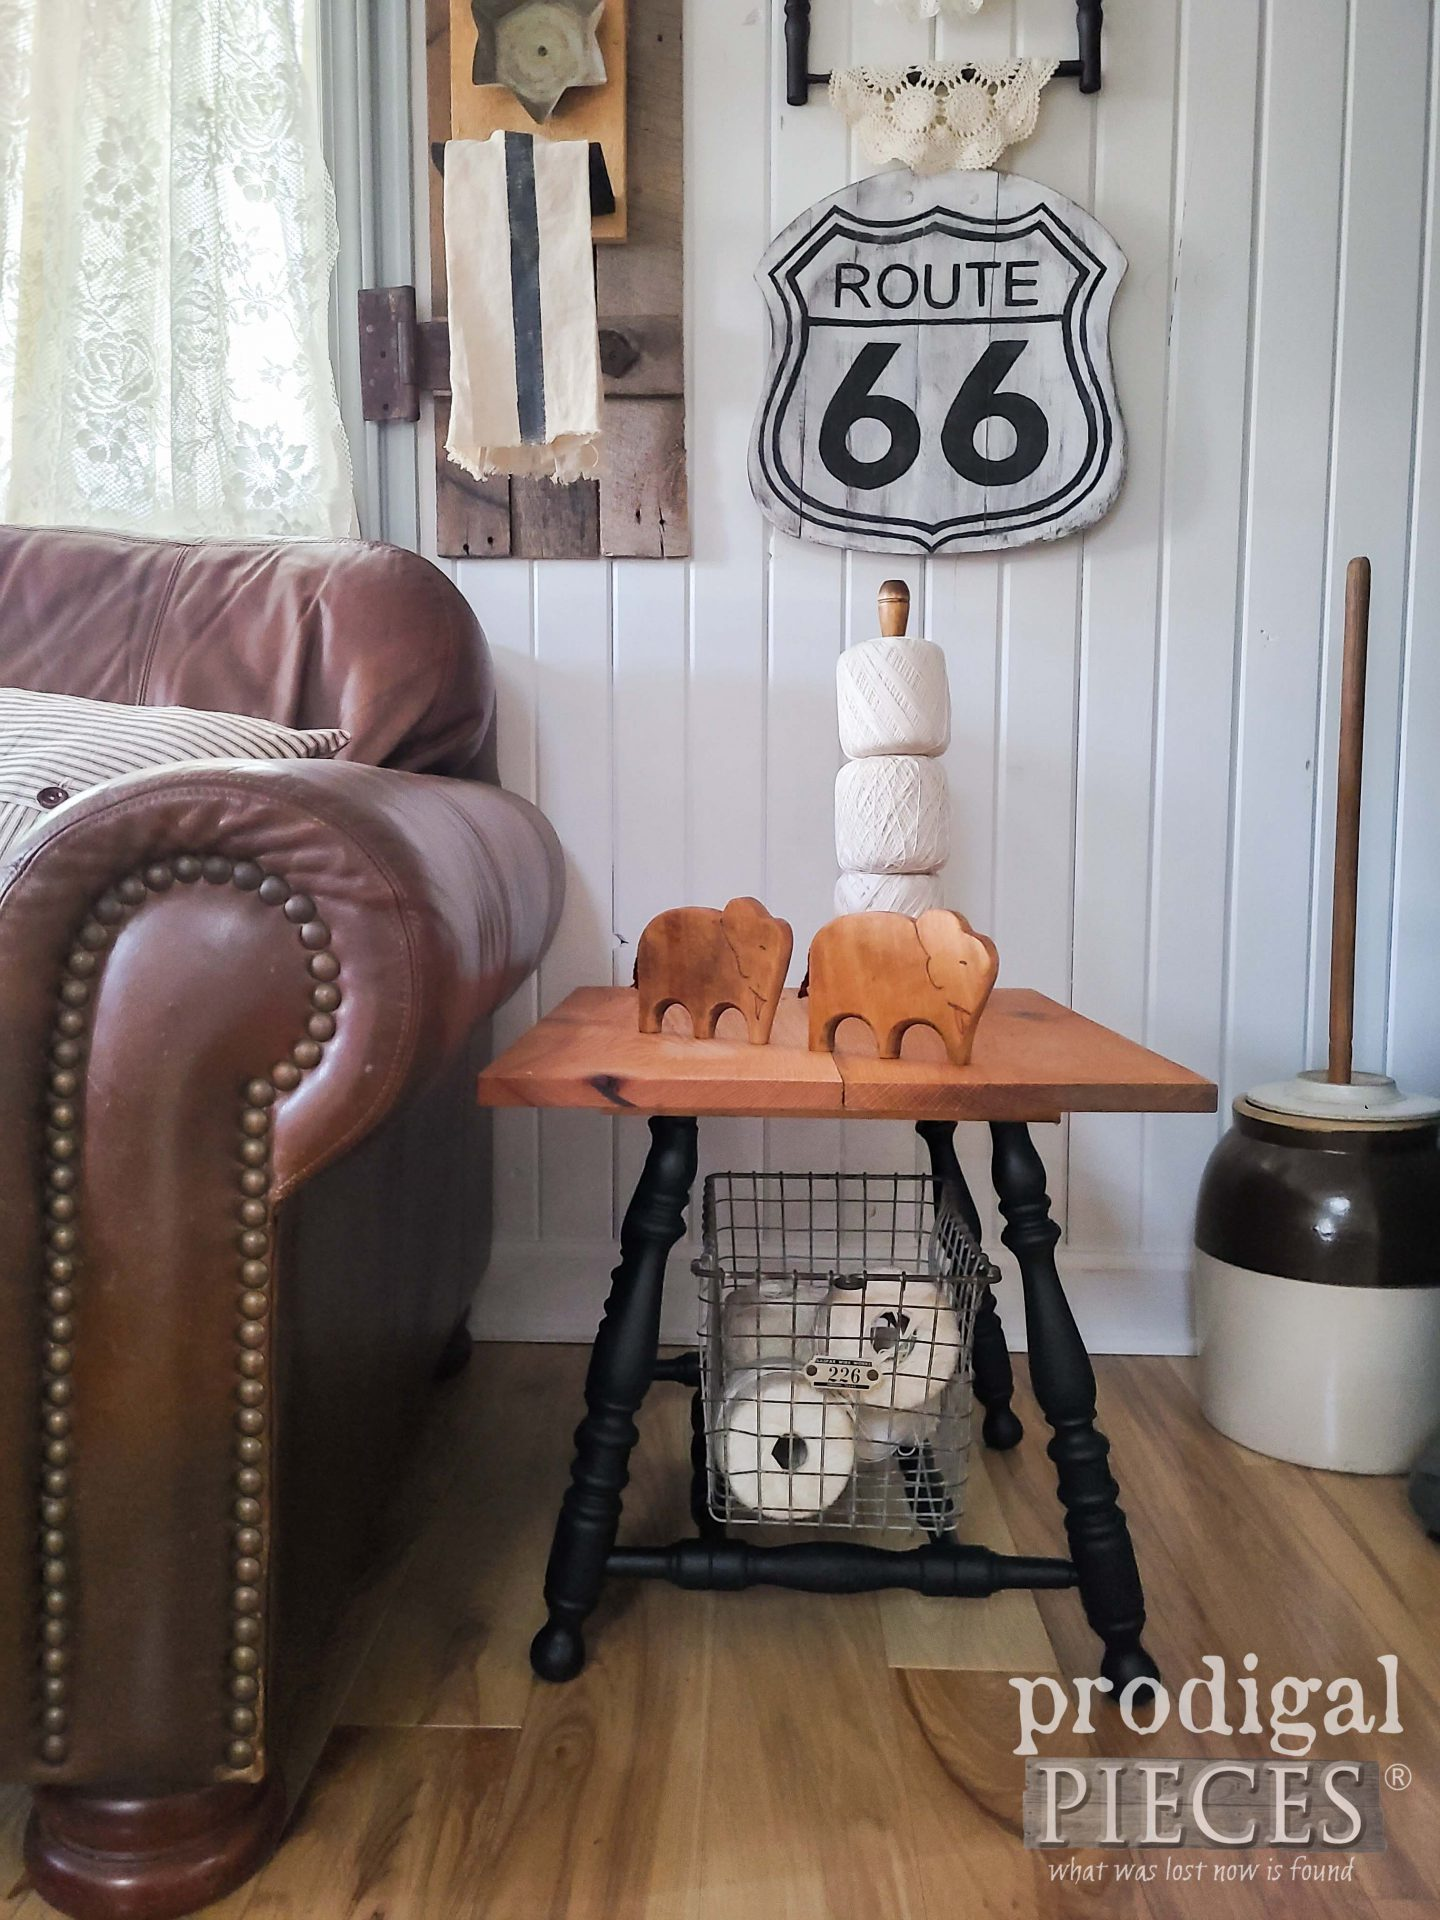 Handmade Side Table for Farmhouse Decor Built by Larissa of Prodigal Pieces from Upcycled Broken Chair | prodigalpieces.com #prodigalpieces #farmhouse #furntiure #diy #home